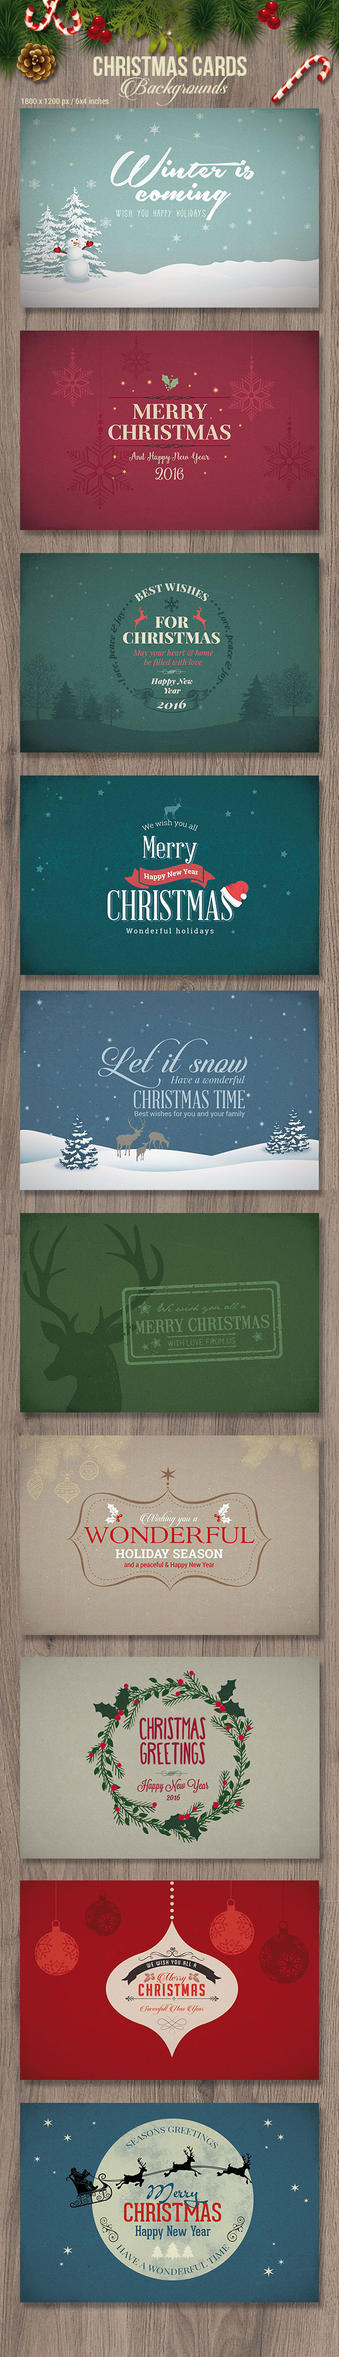 Vintage Christmas Cards by imagearea